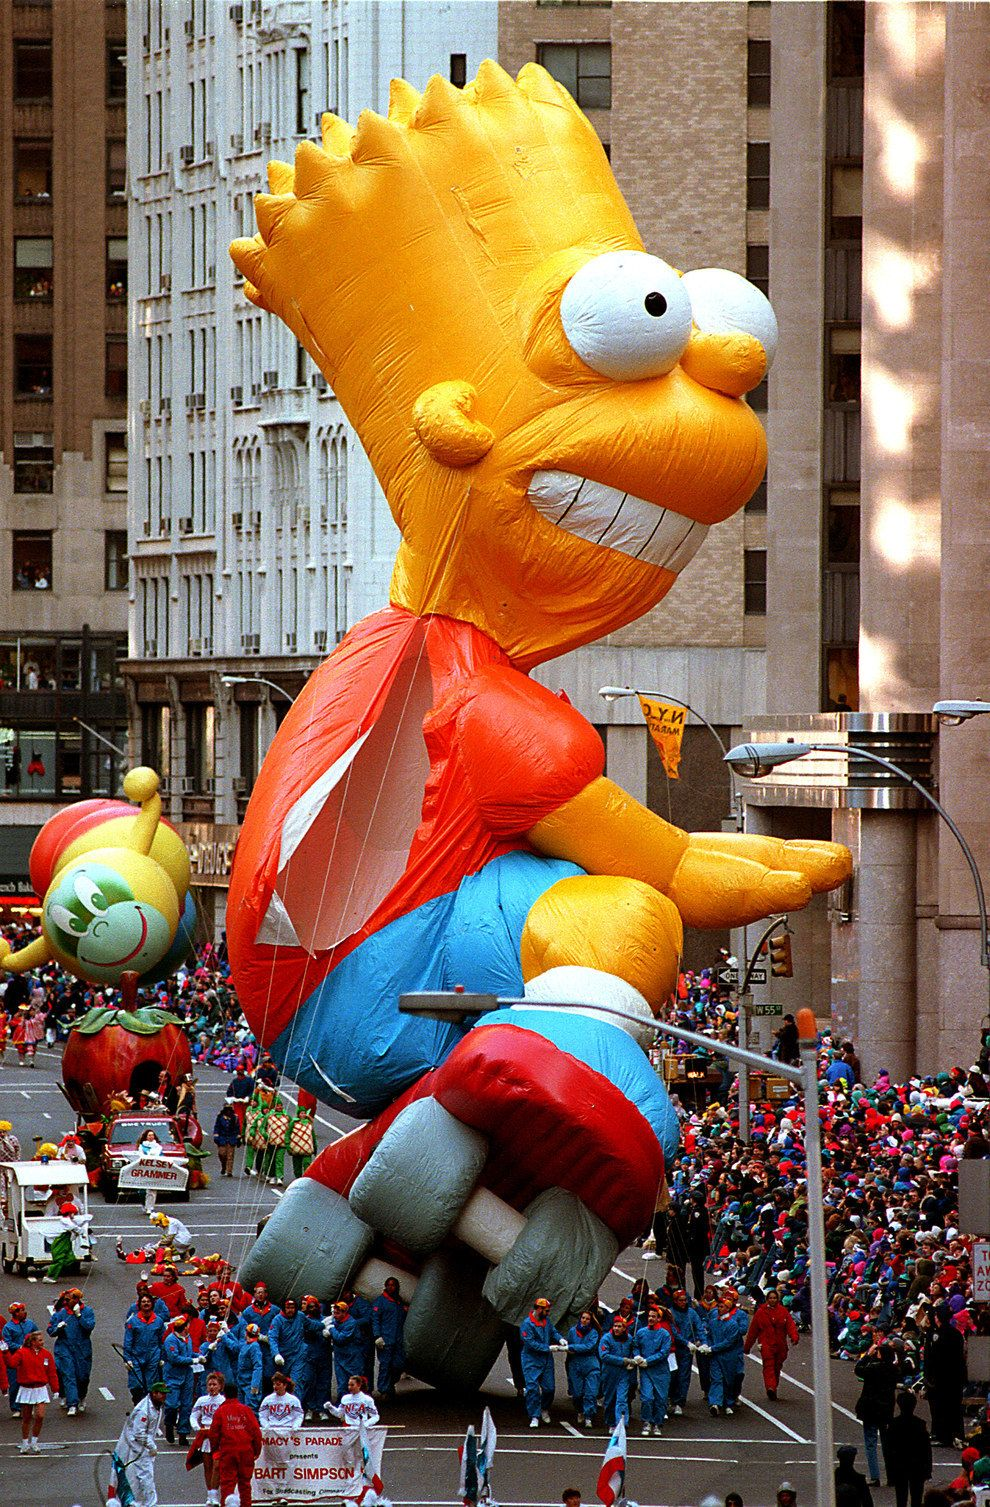 The Macy S Thanksgiving Parade In The 90s Was Pure Perfection Macy S Thanksgiving Day Parade Thanksgiving Parade Macy S Thanksgiving Day Parade